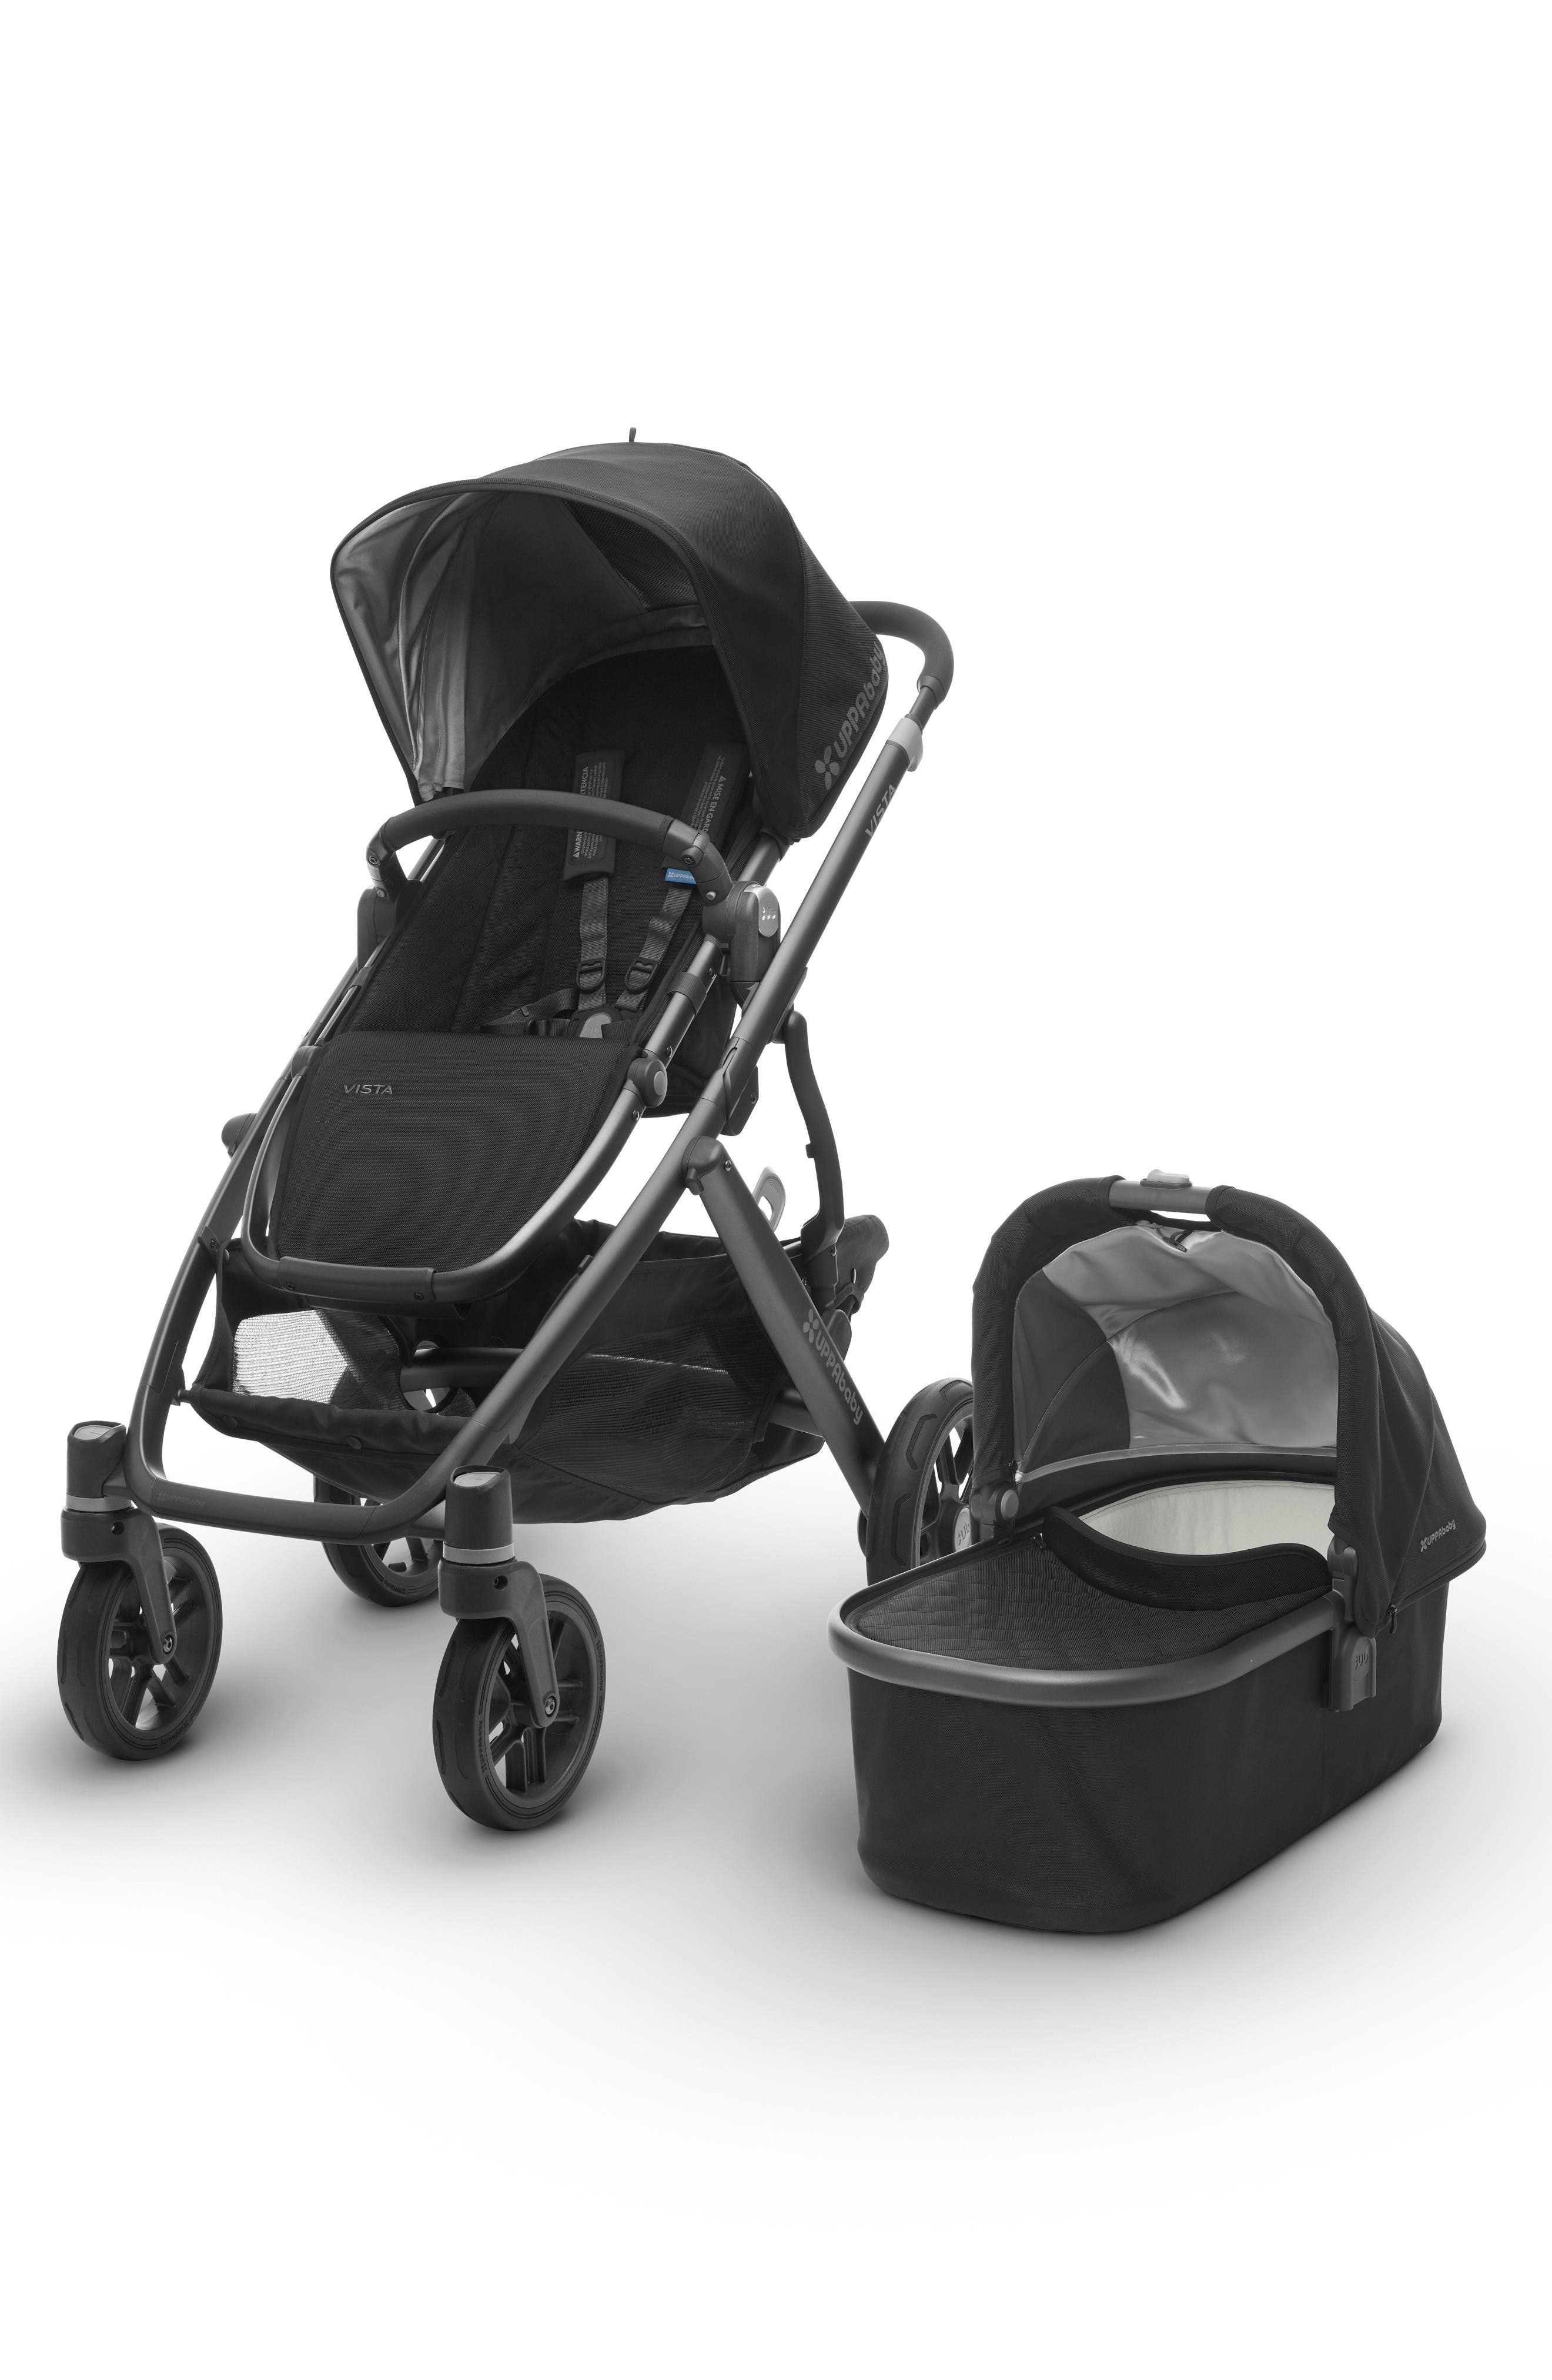 Alternate Image 1 Selected - UPPAbaby 2017 VISTA Aluminum Frame Convertible Stroller with Bassinet & Toddler Seat